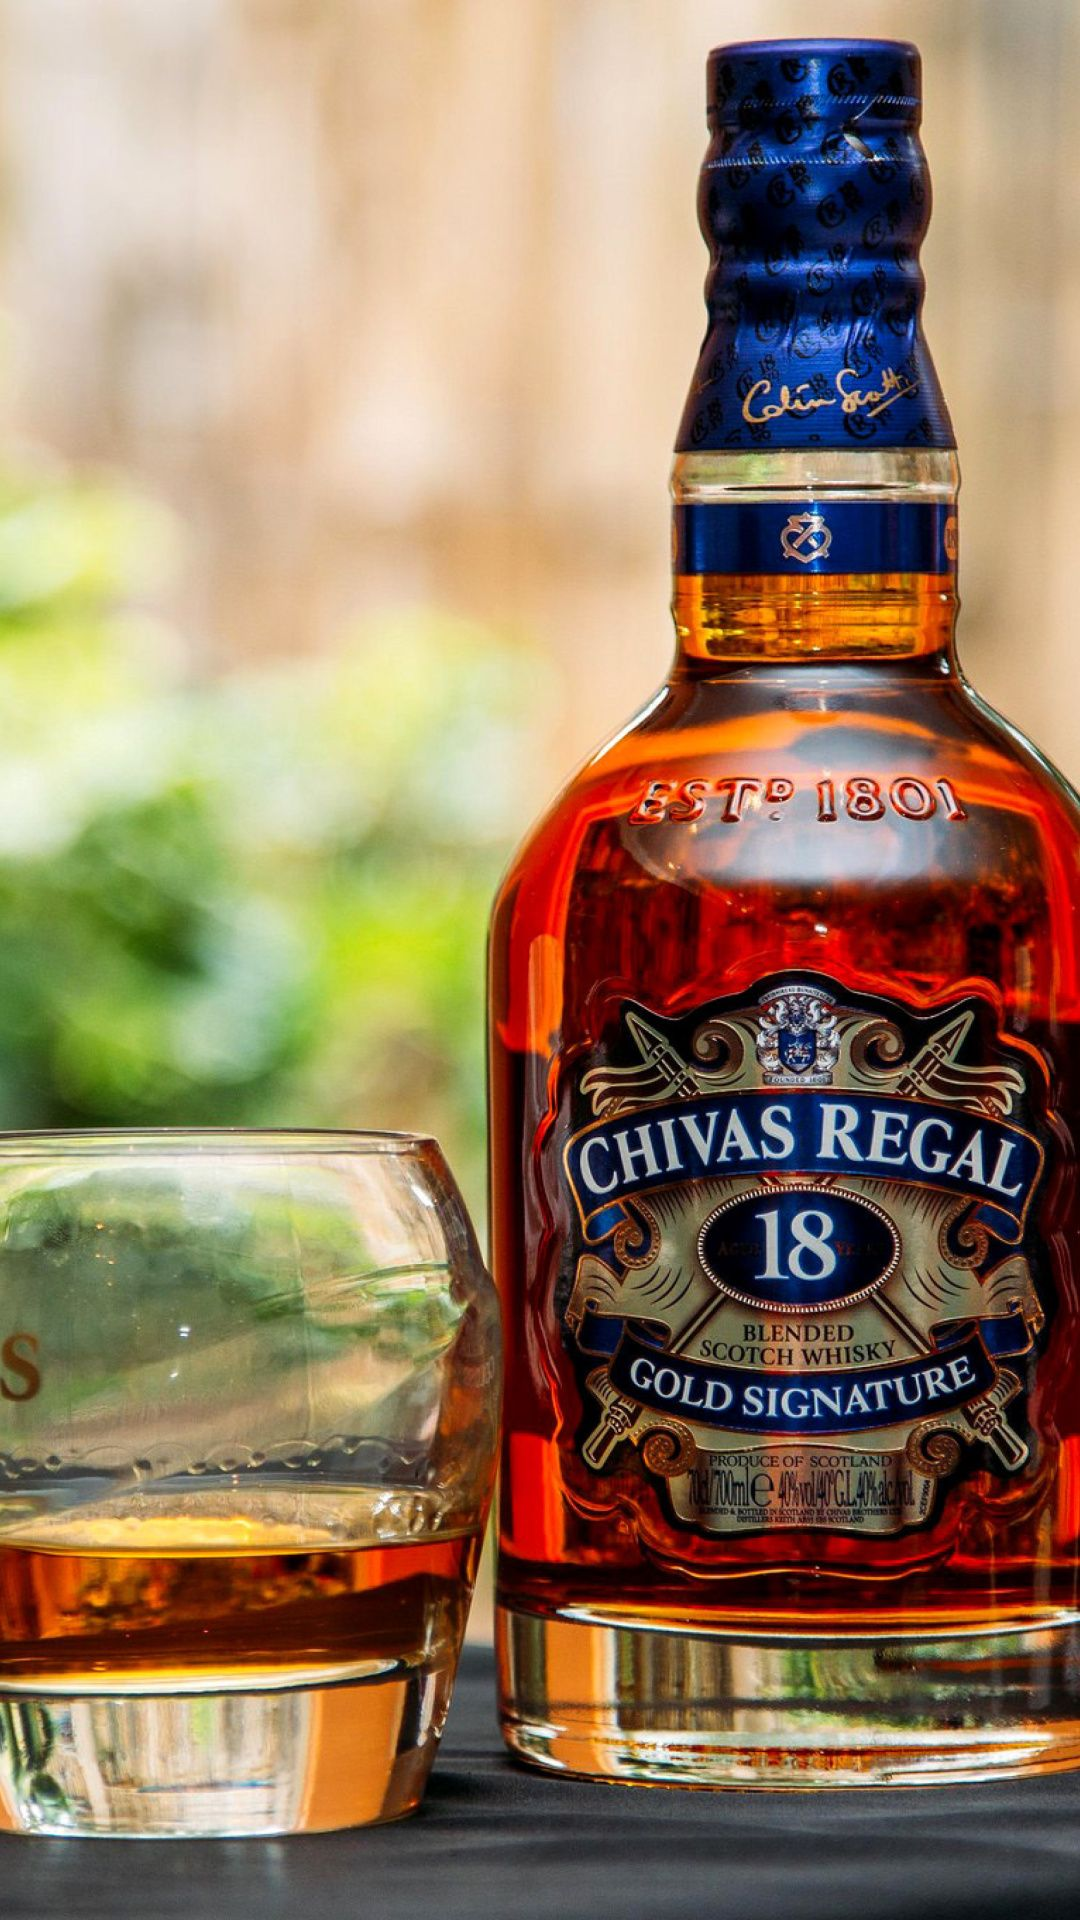 Chivas Regal Wallpapers Weneedfun Liquor Drinks Cigars And Whiskey Whisky